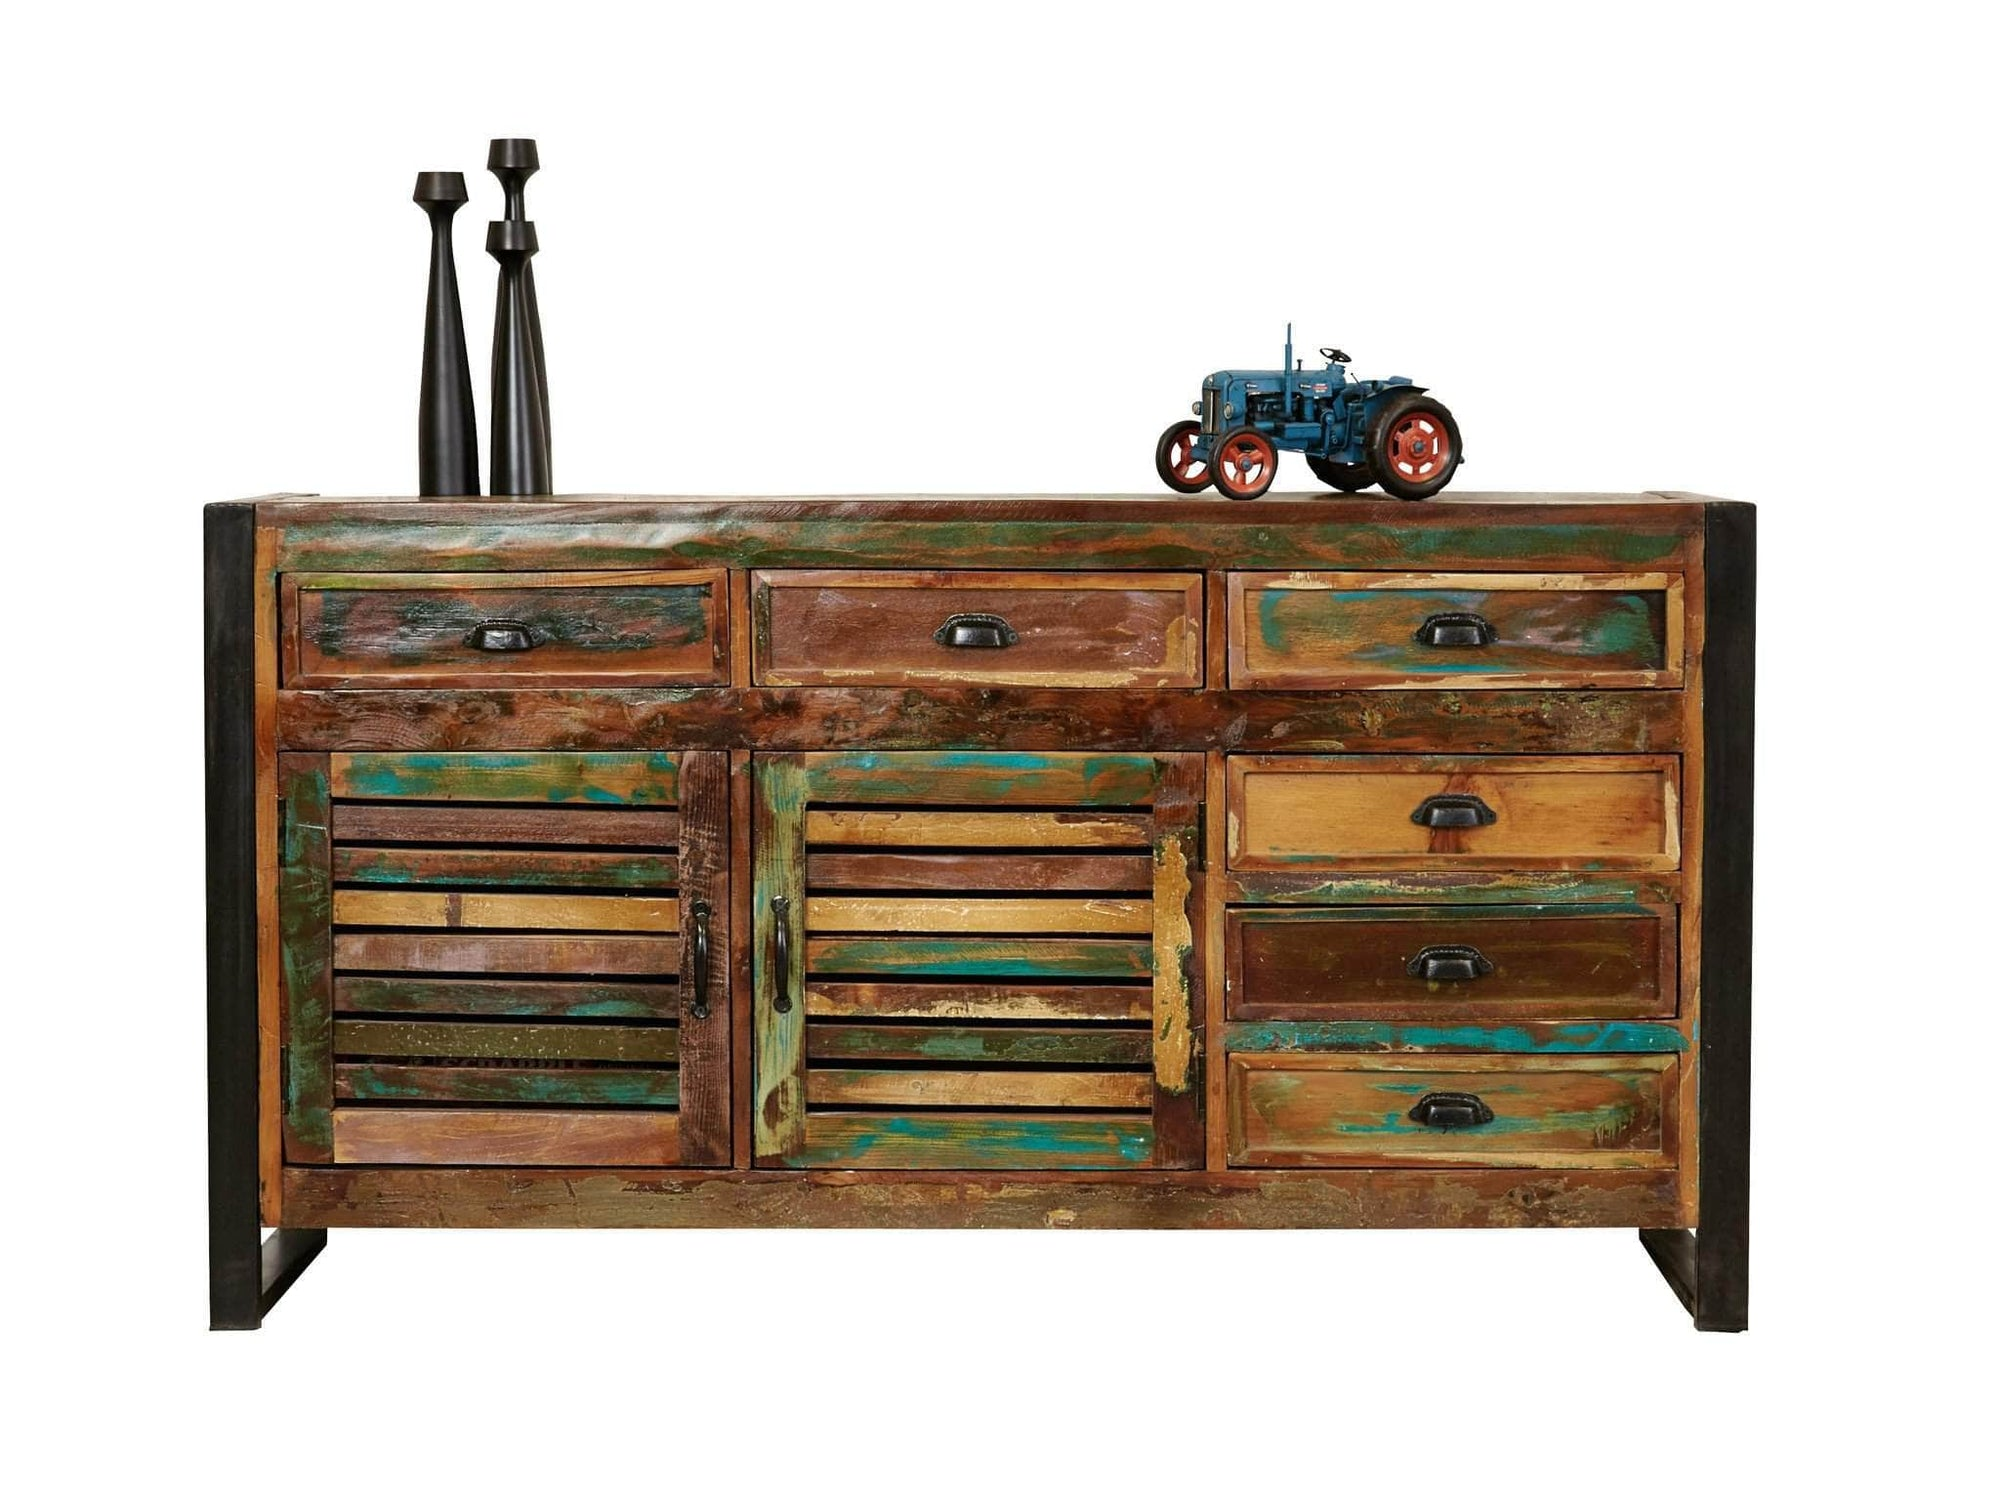 Large, colourful reclaimed wood sideboard with six drawers and storage cupboard